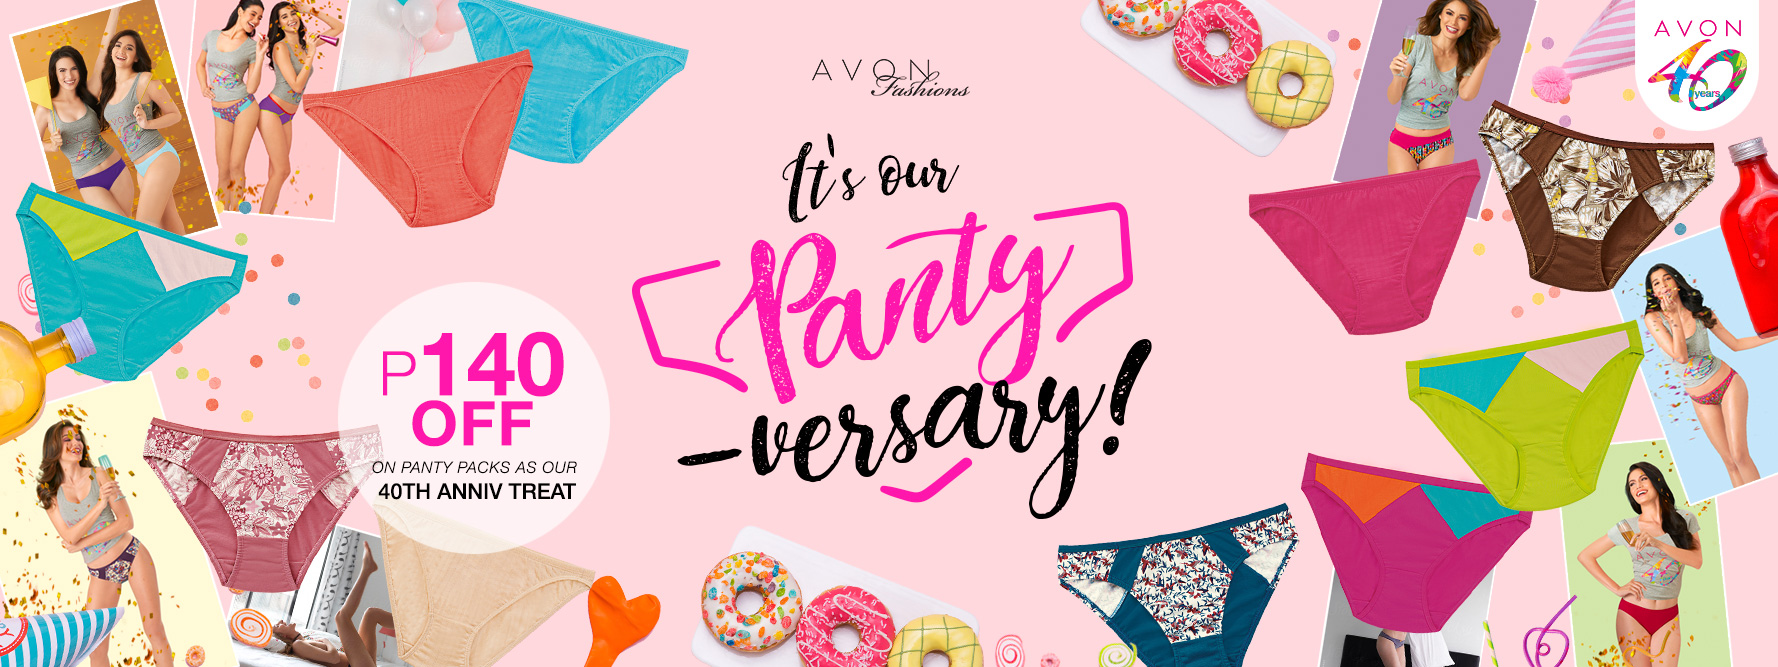 The Epic Panty-versary Sale is here!